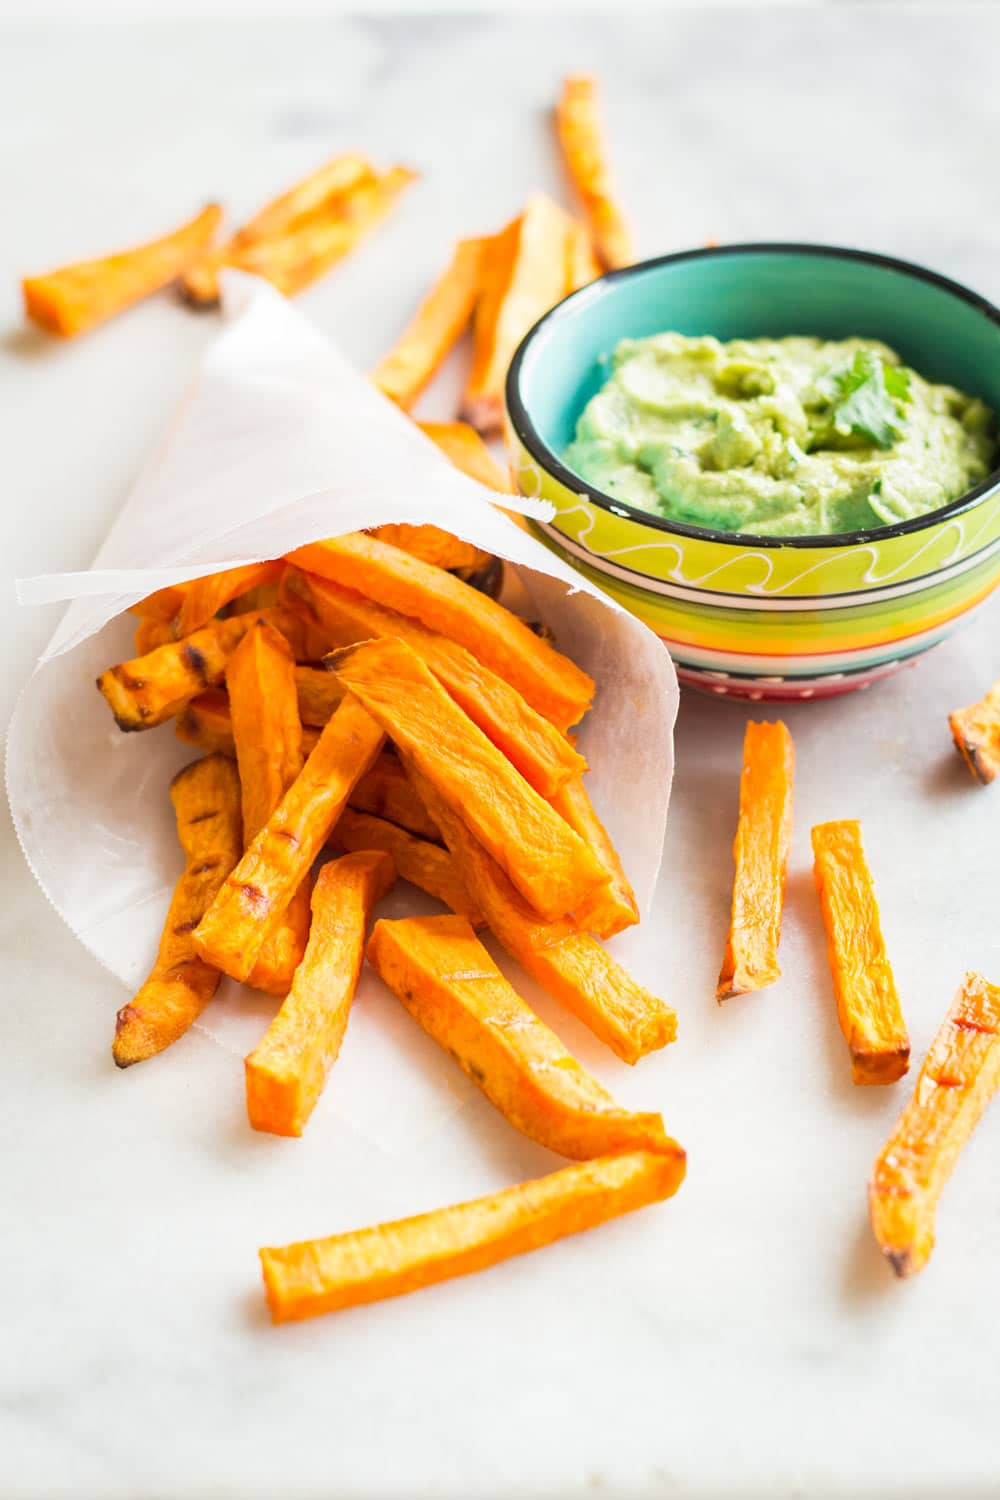 Beyond delicious Avocado Tahini Dip to dip your sweet potato fries in and indulge in a healthy snack. Great party appetizer, too!